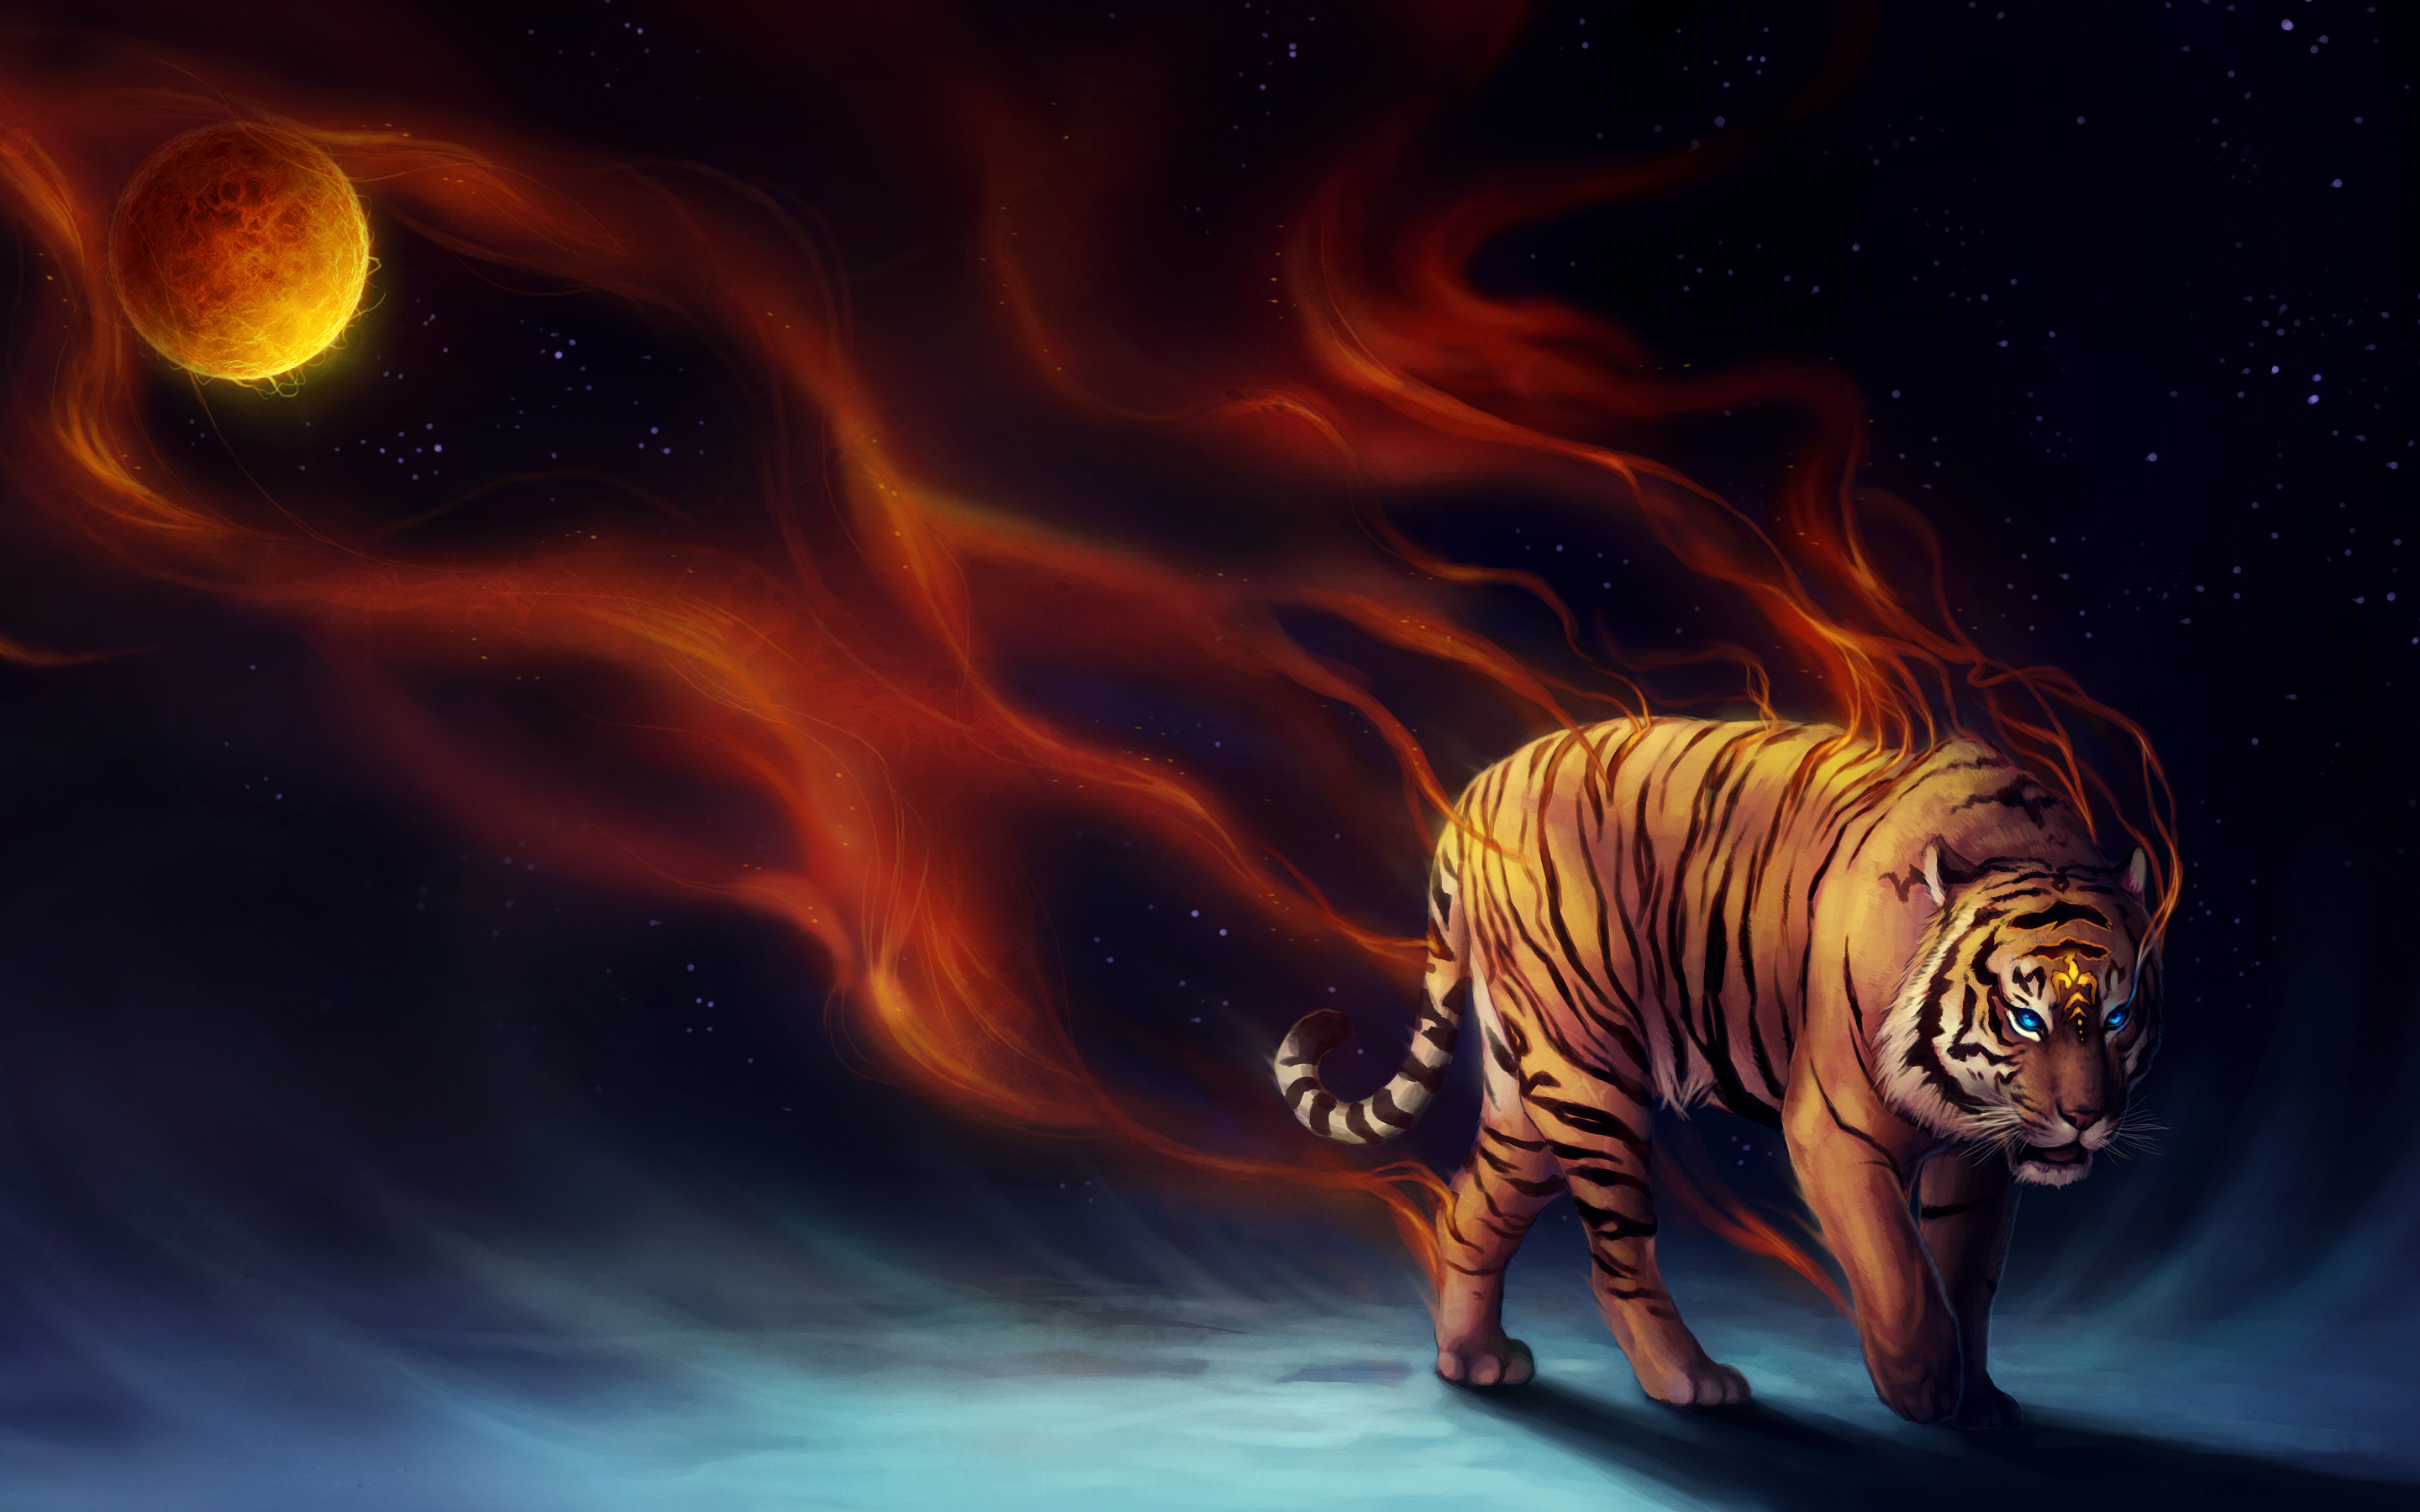 tiger background pictures - wallpapersafari